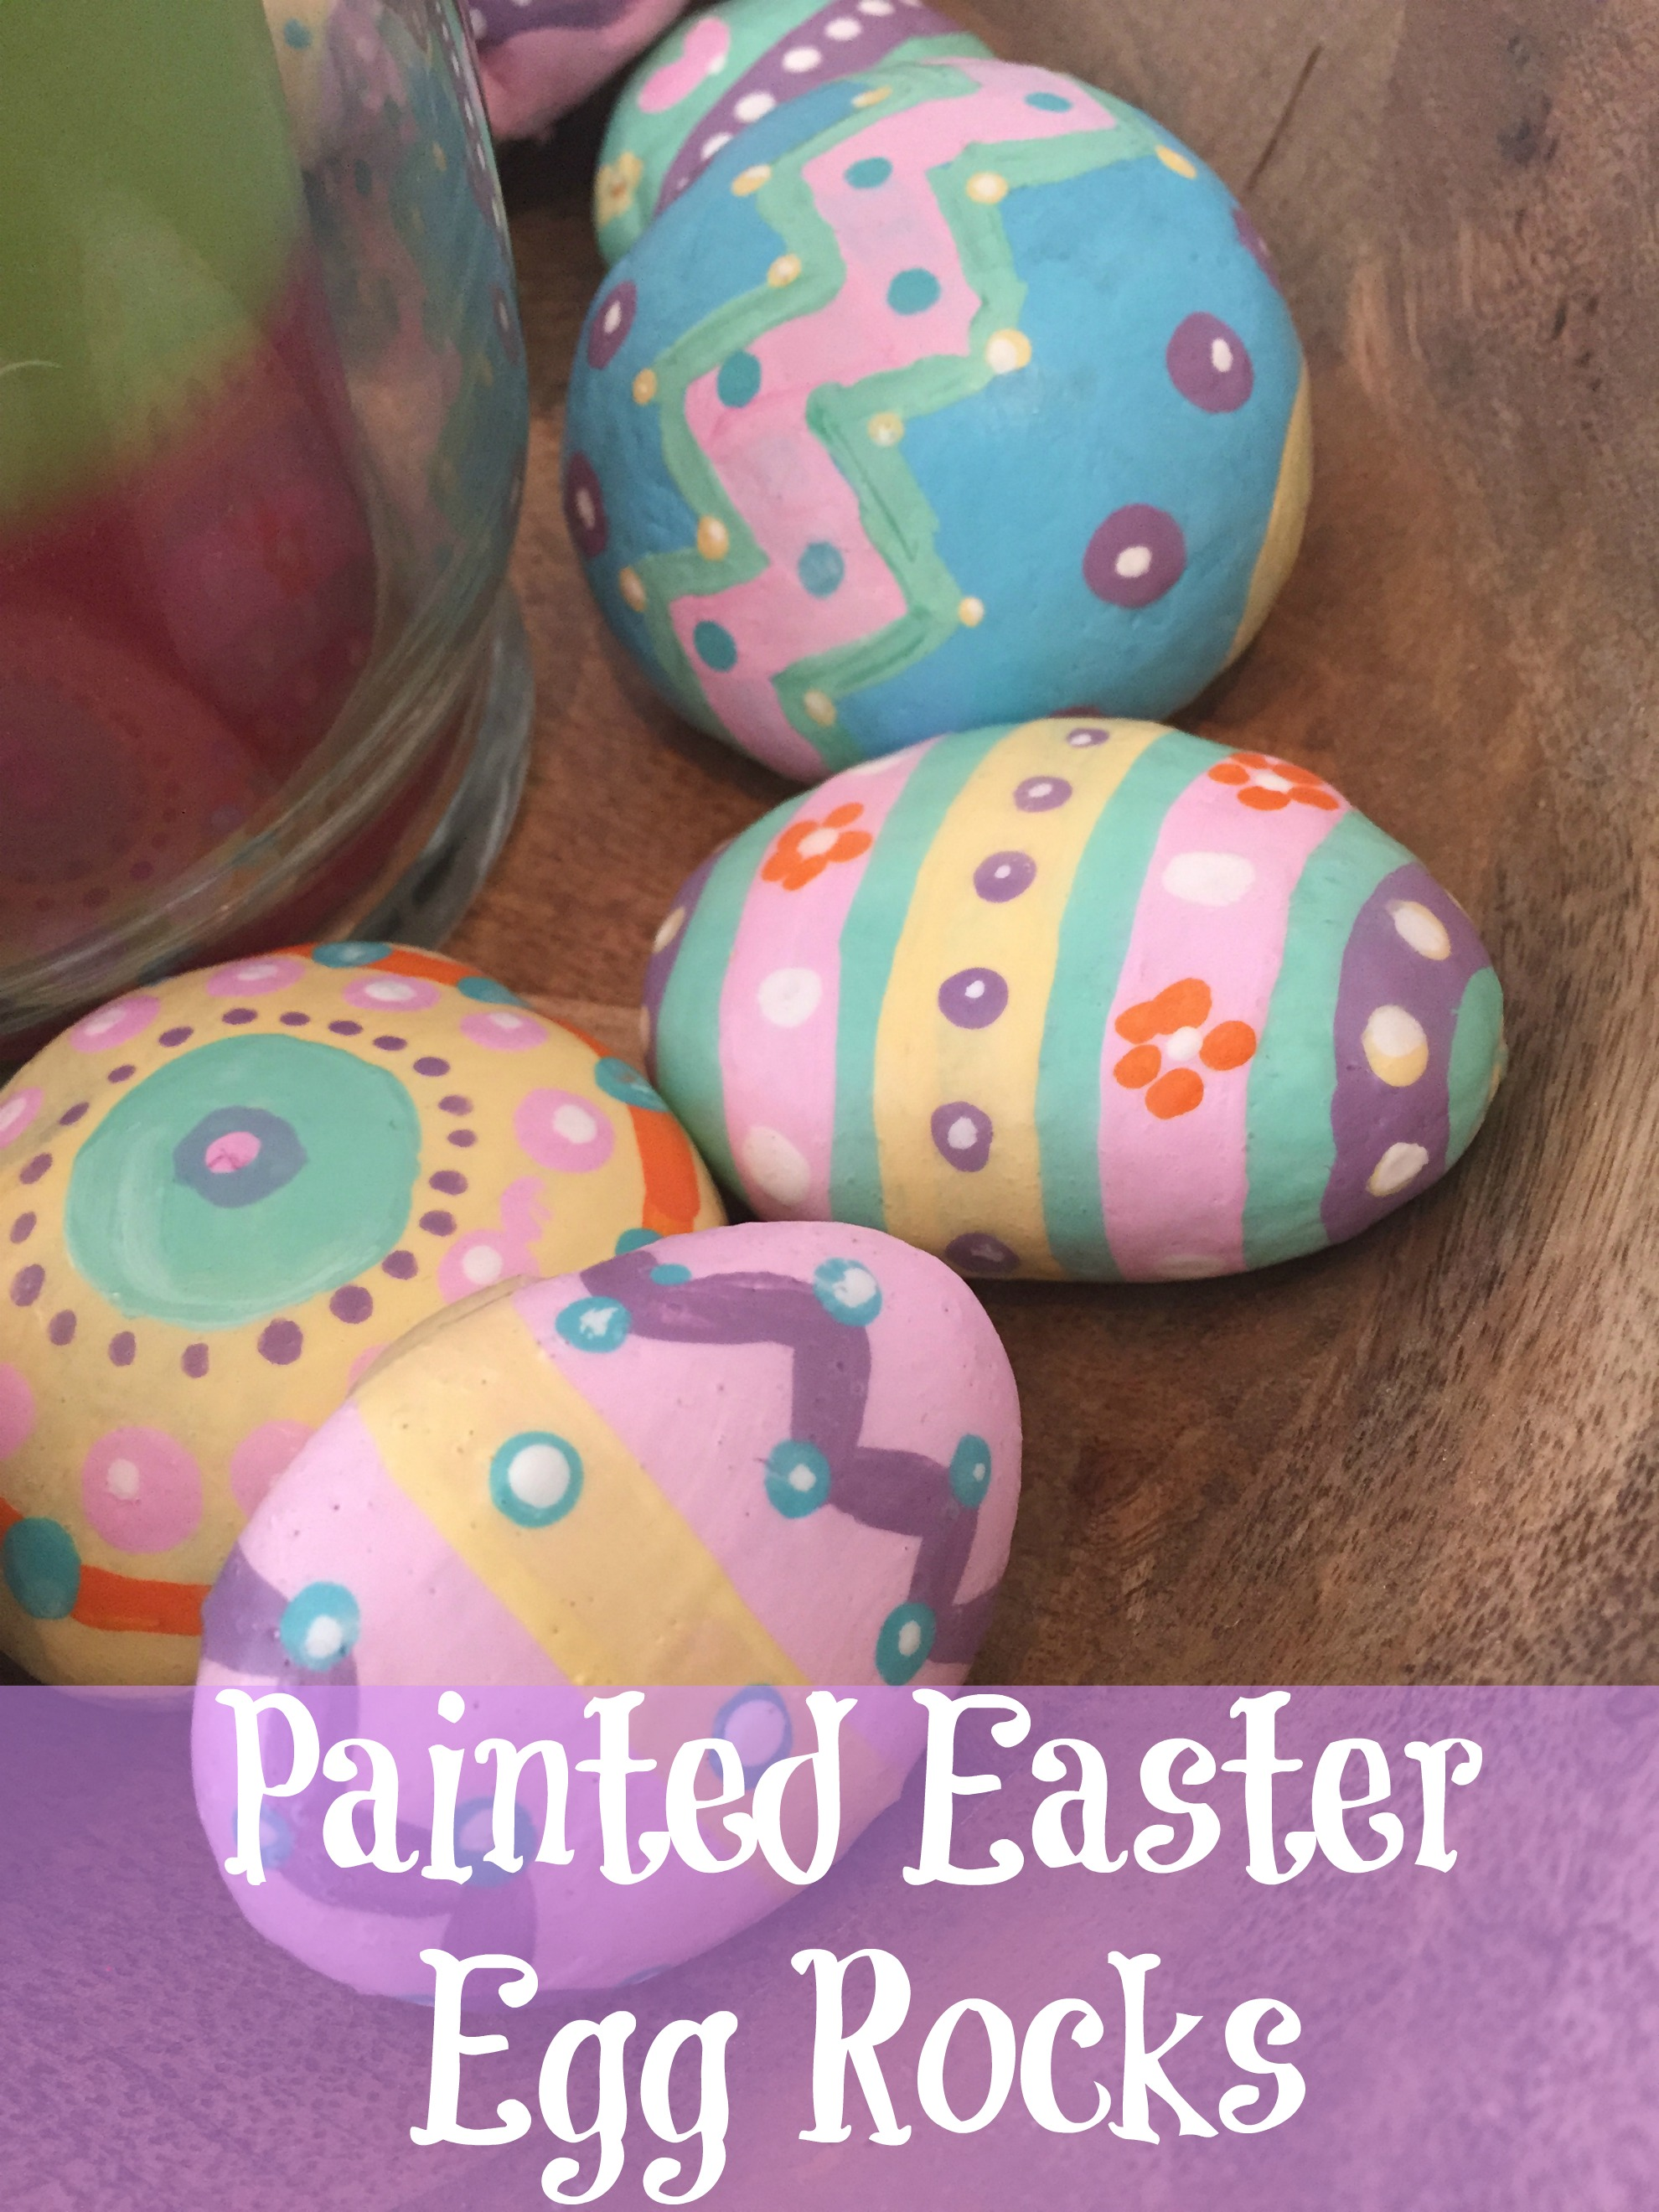 Painted Easter Egg Rocks Daisy amp Daydreams